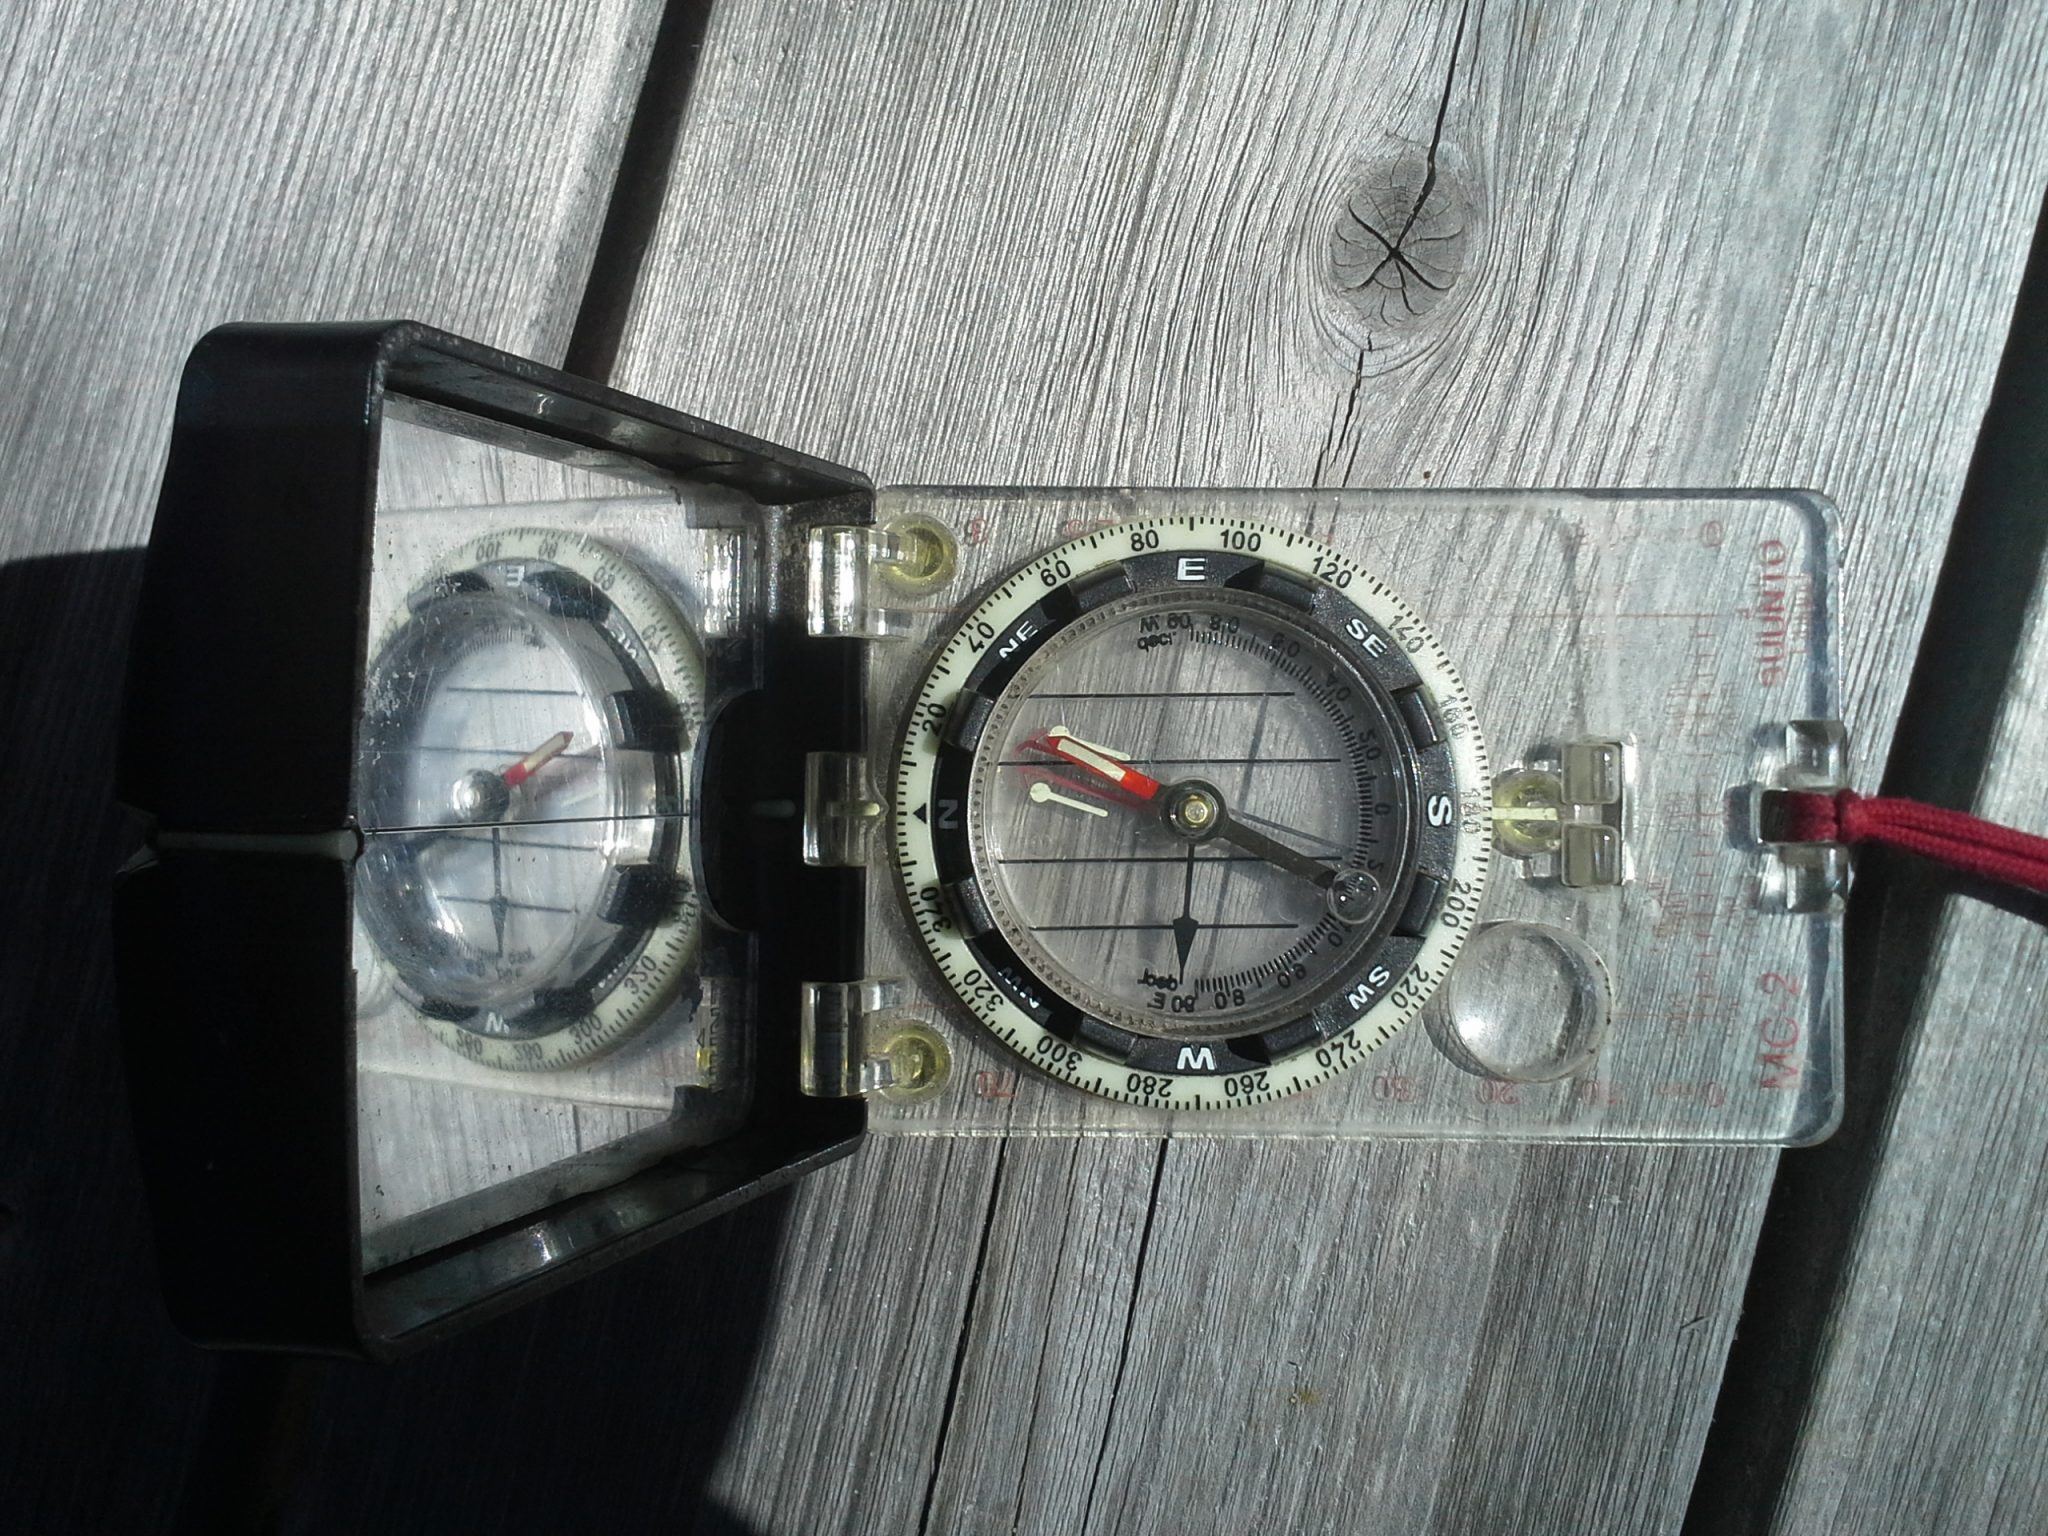 Safety in Bear Country: A Compass for Navigation